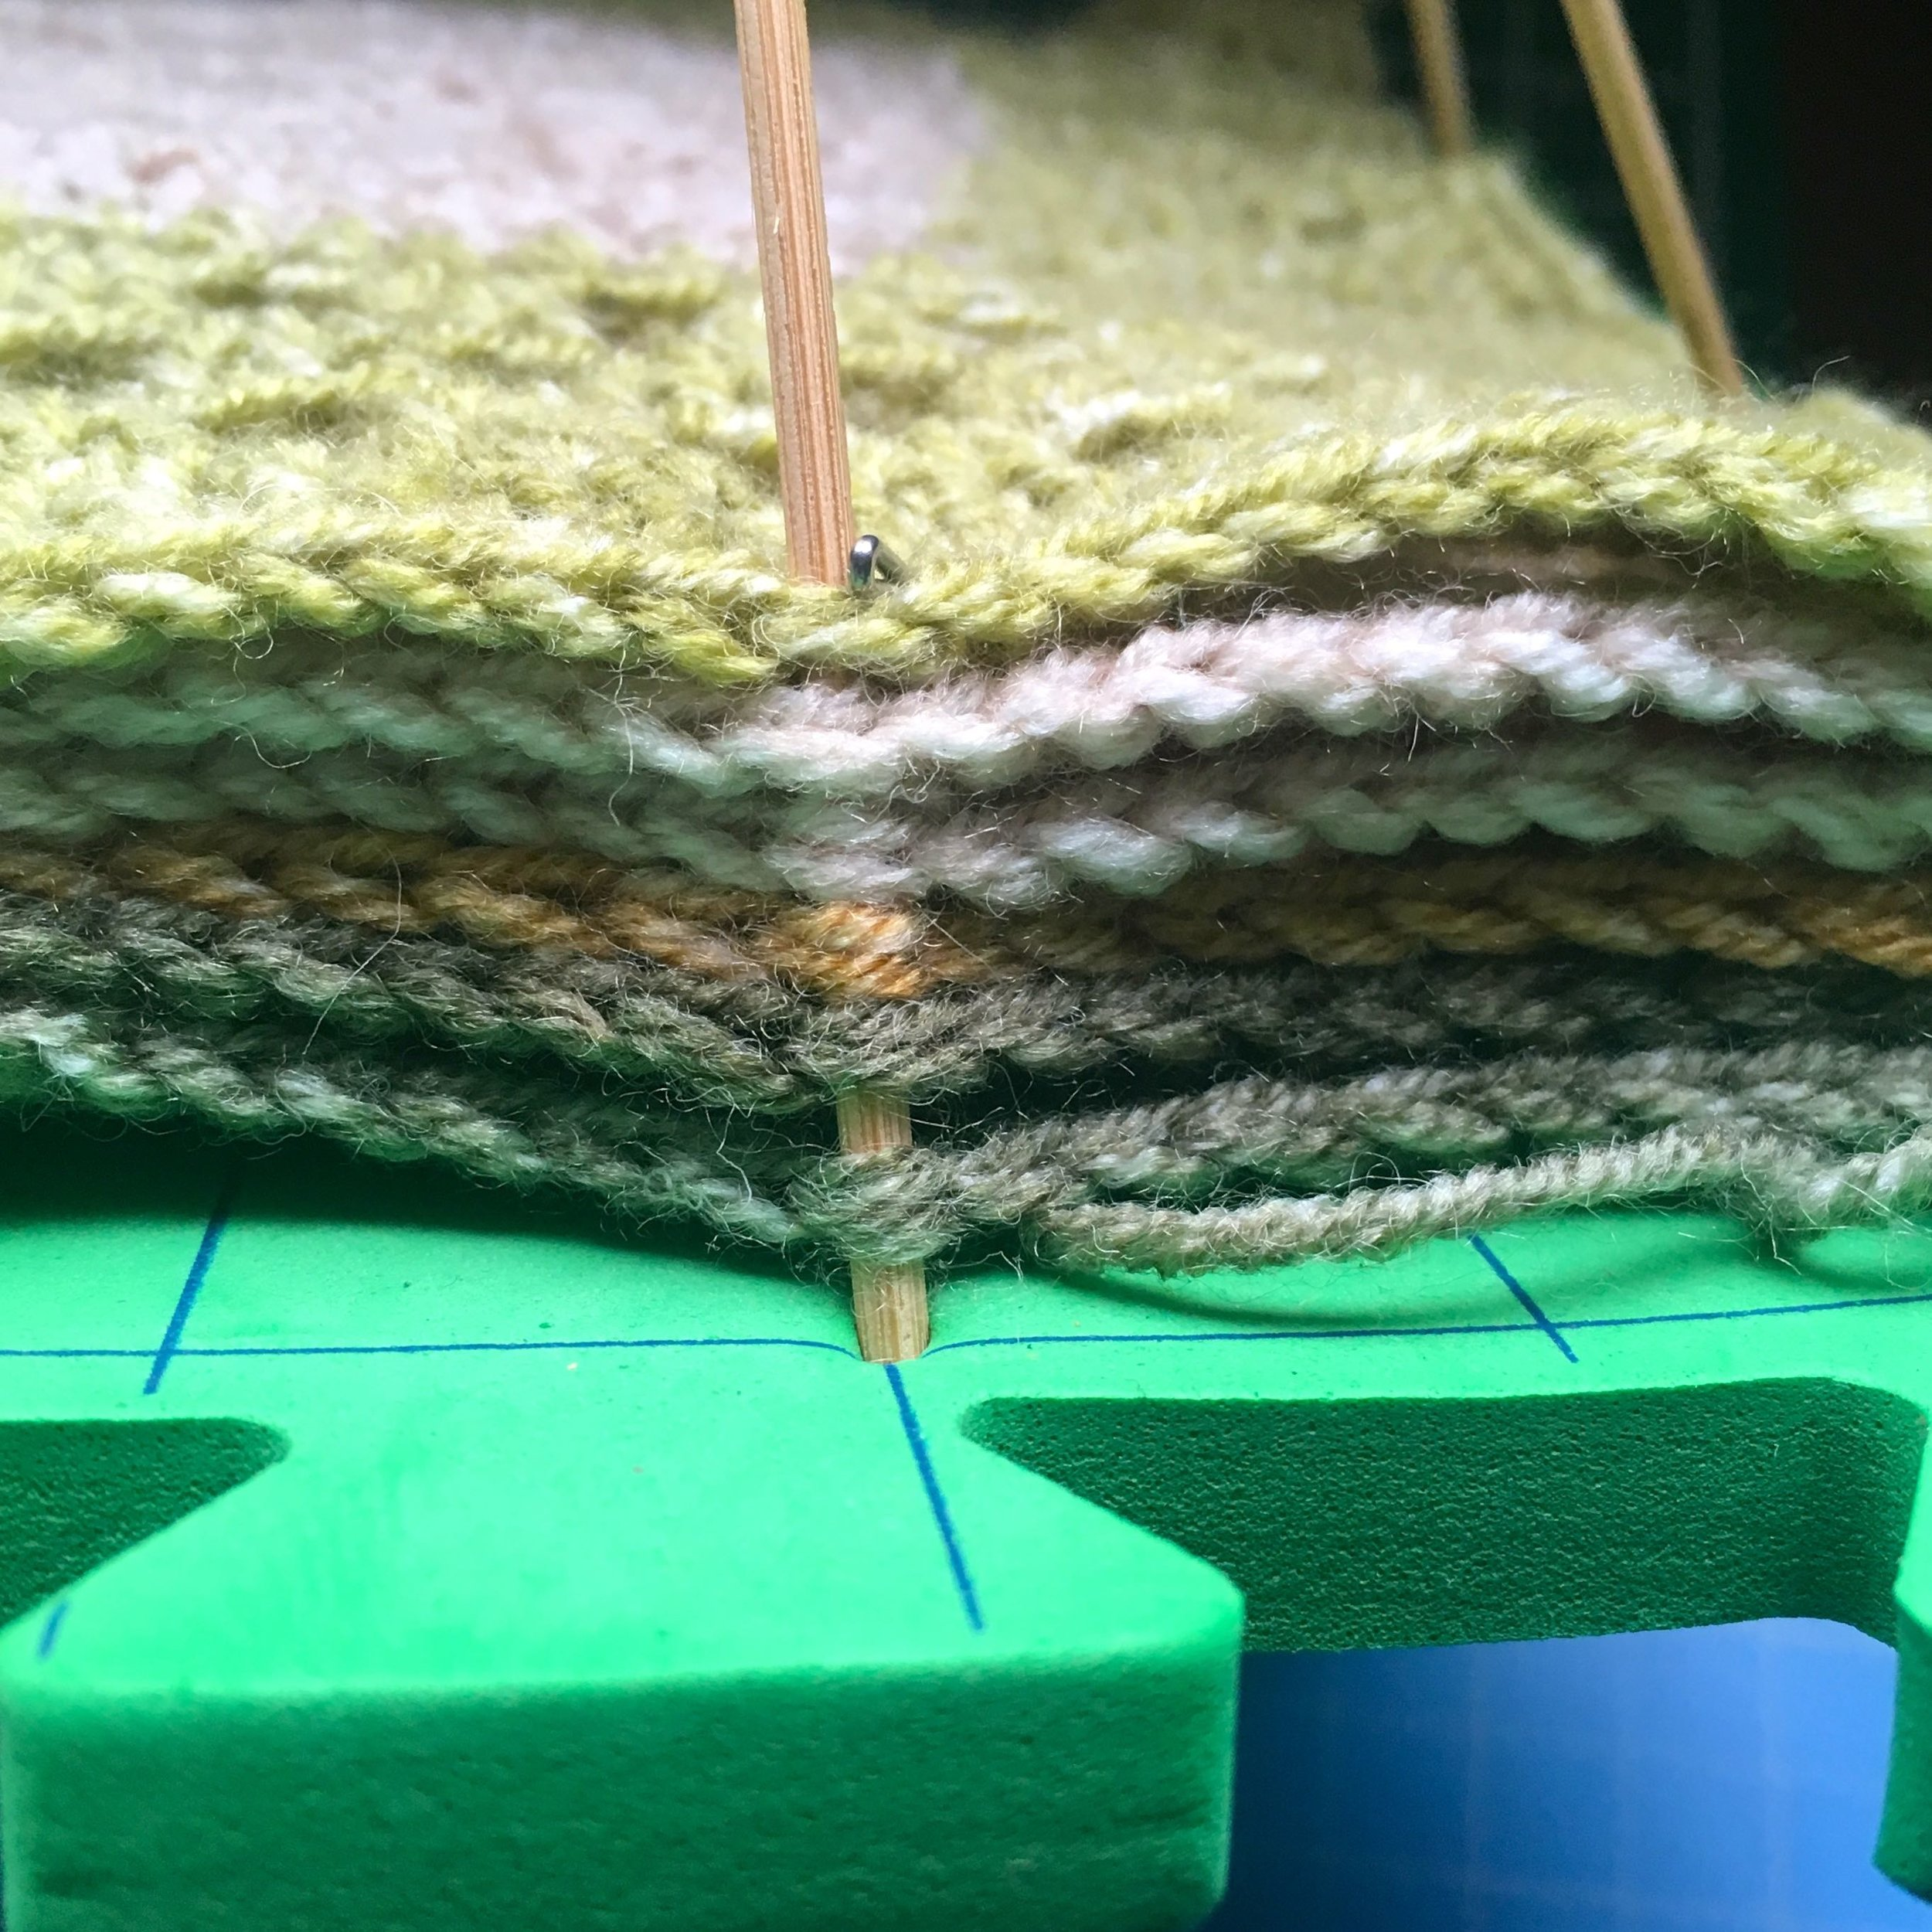 A side on view of the squares being blocked